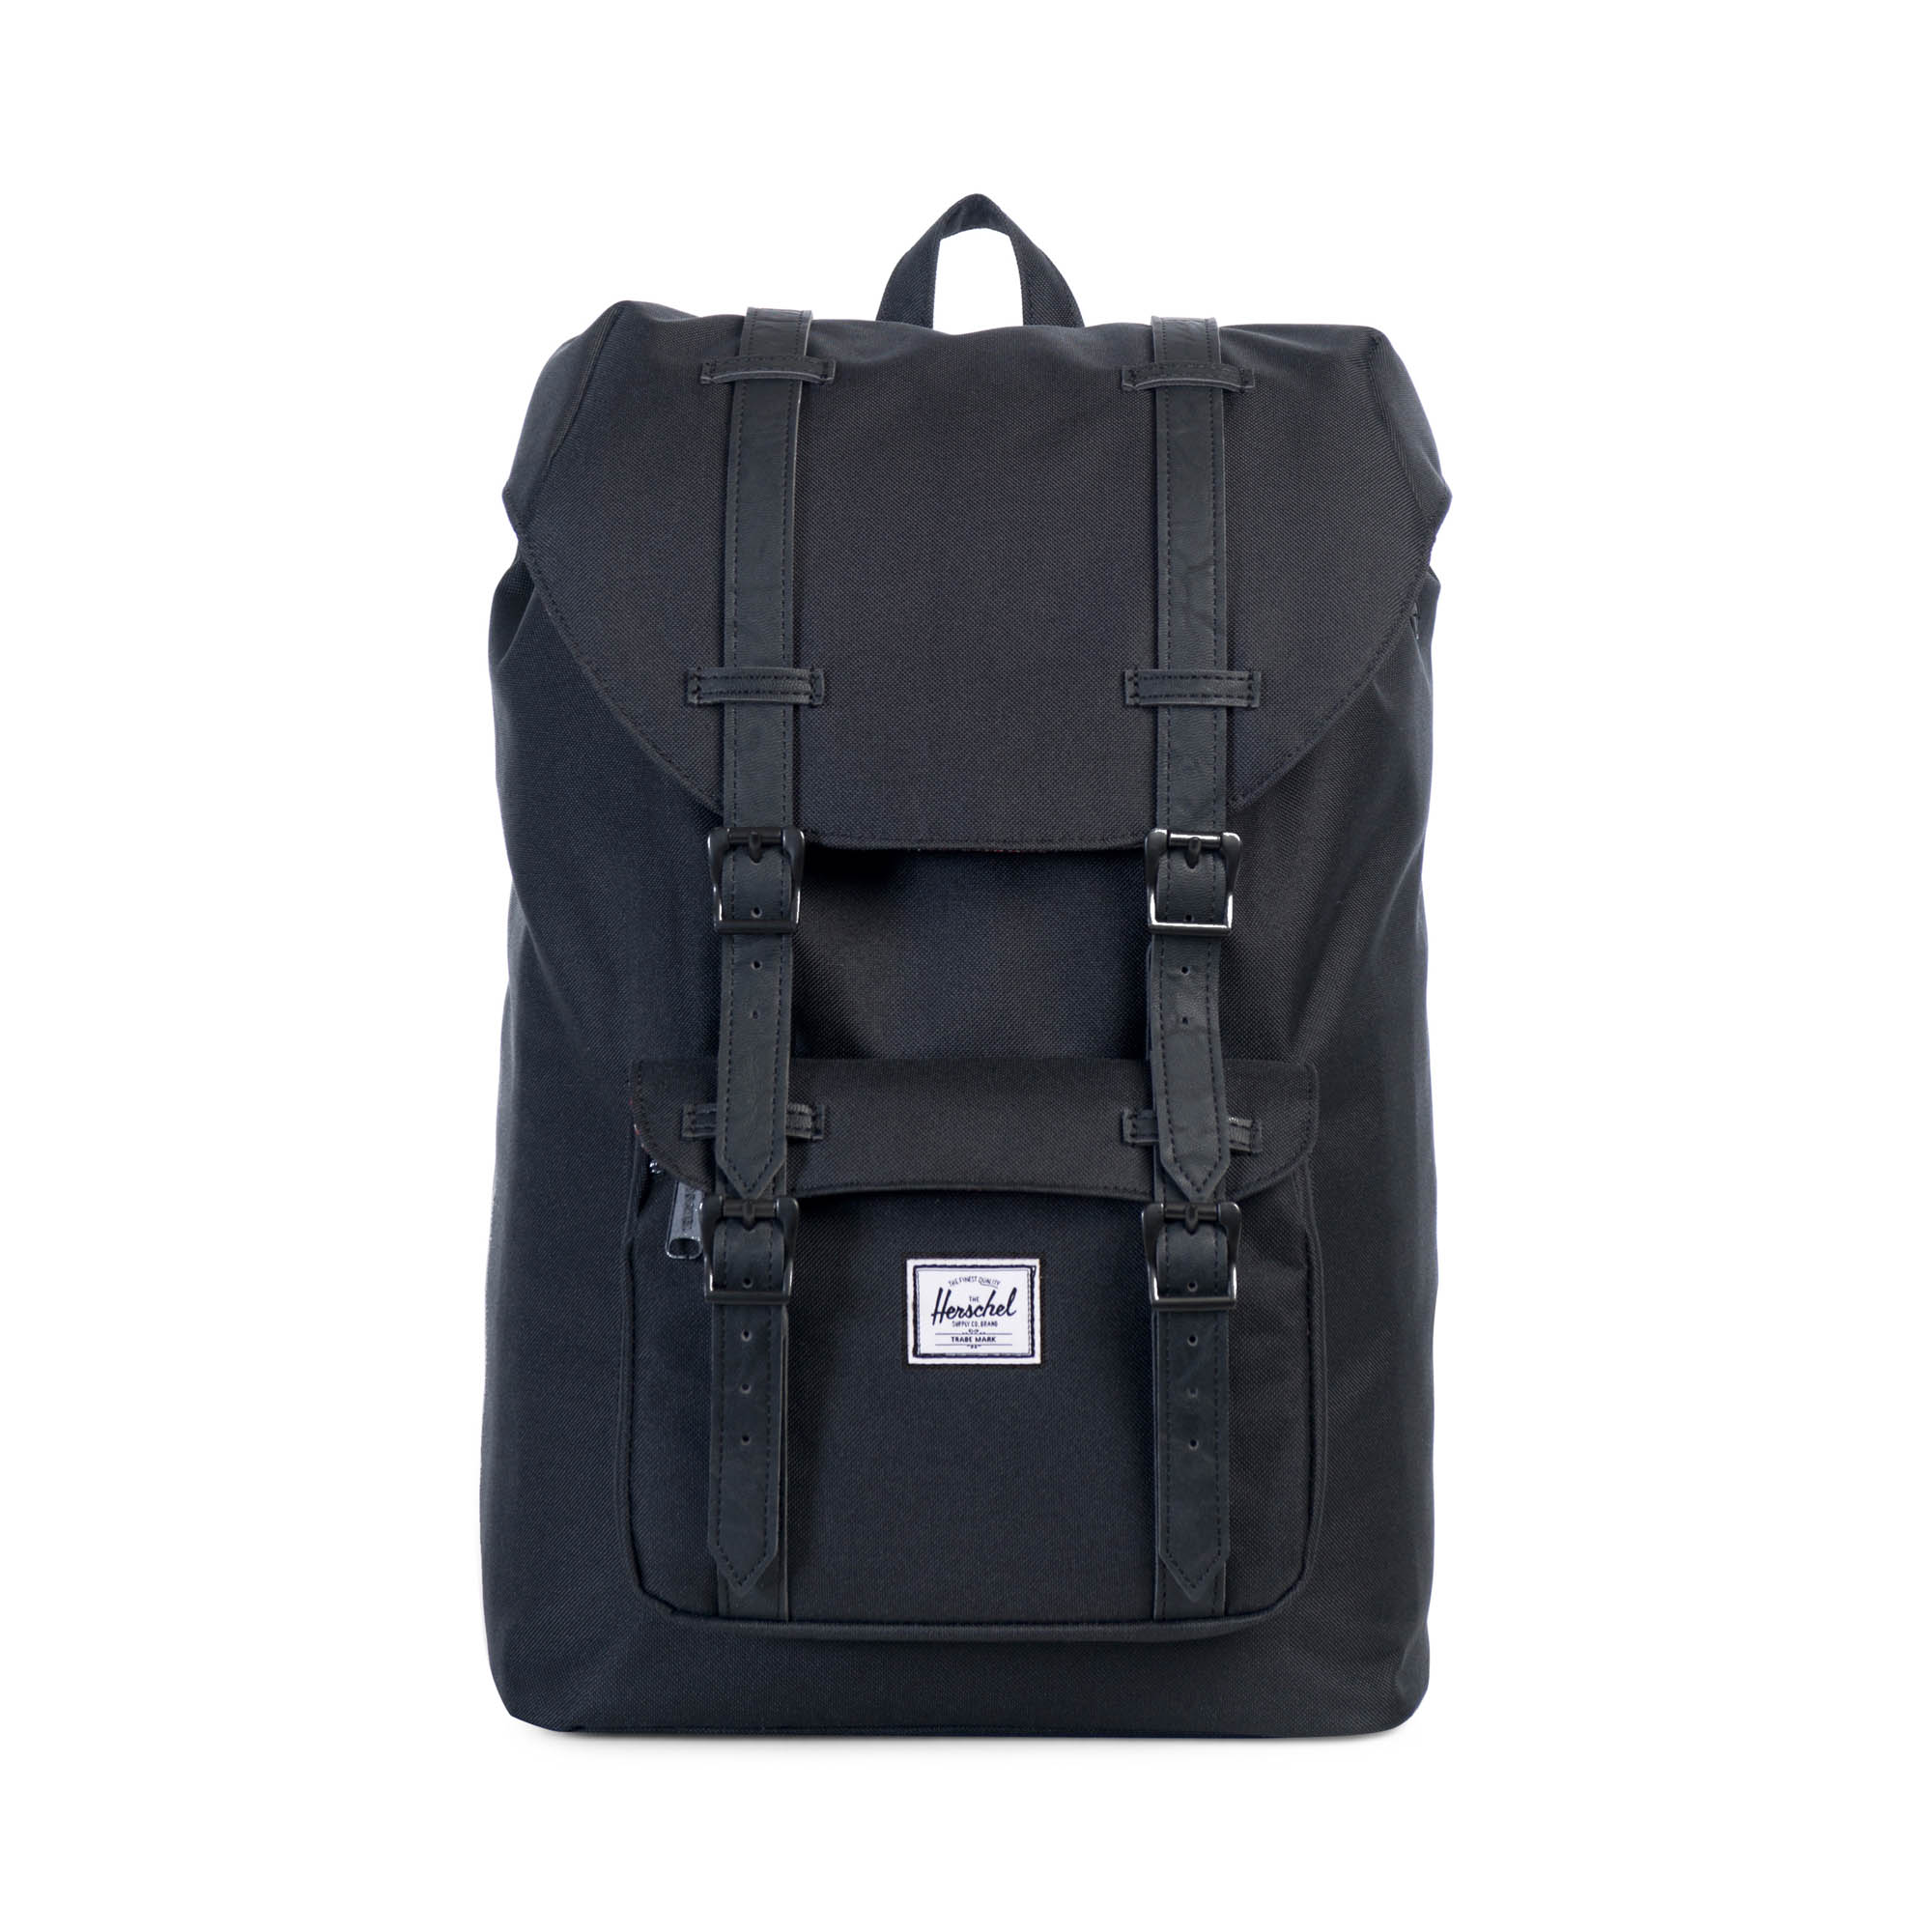 b0f746aac6b6 Herschel Little America Backpack Mid-Volume